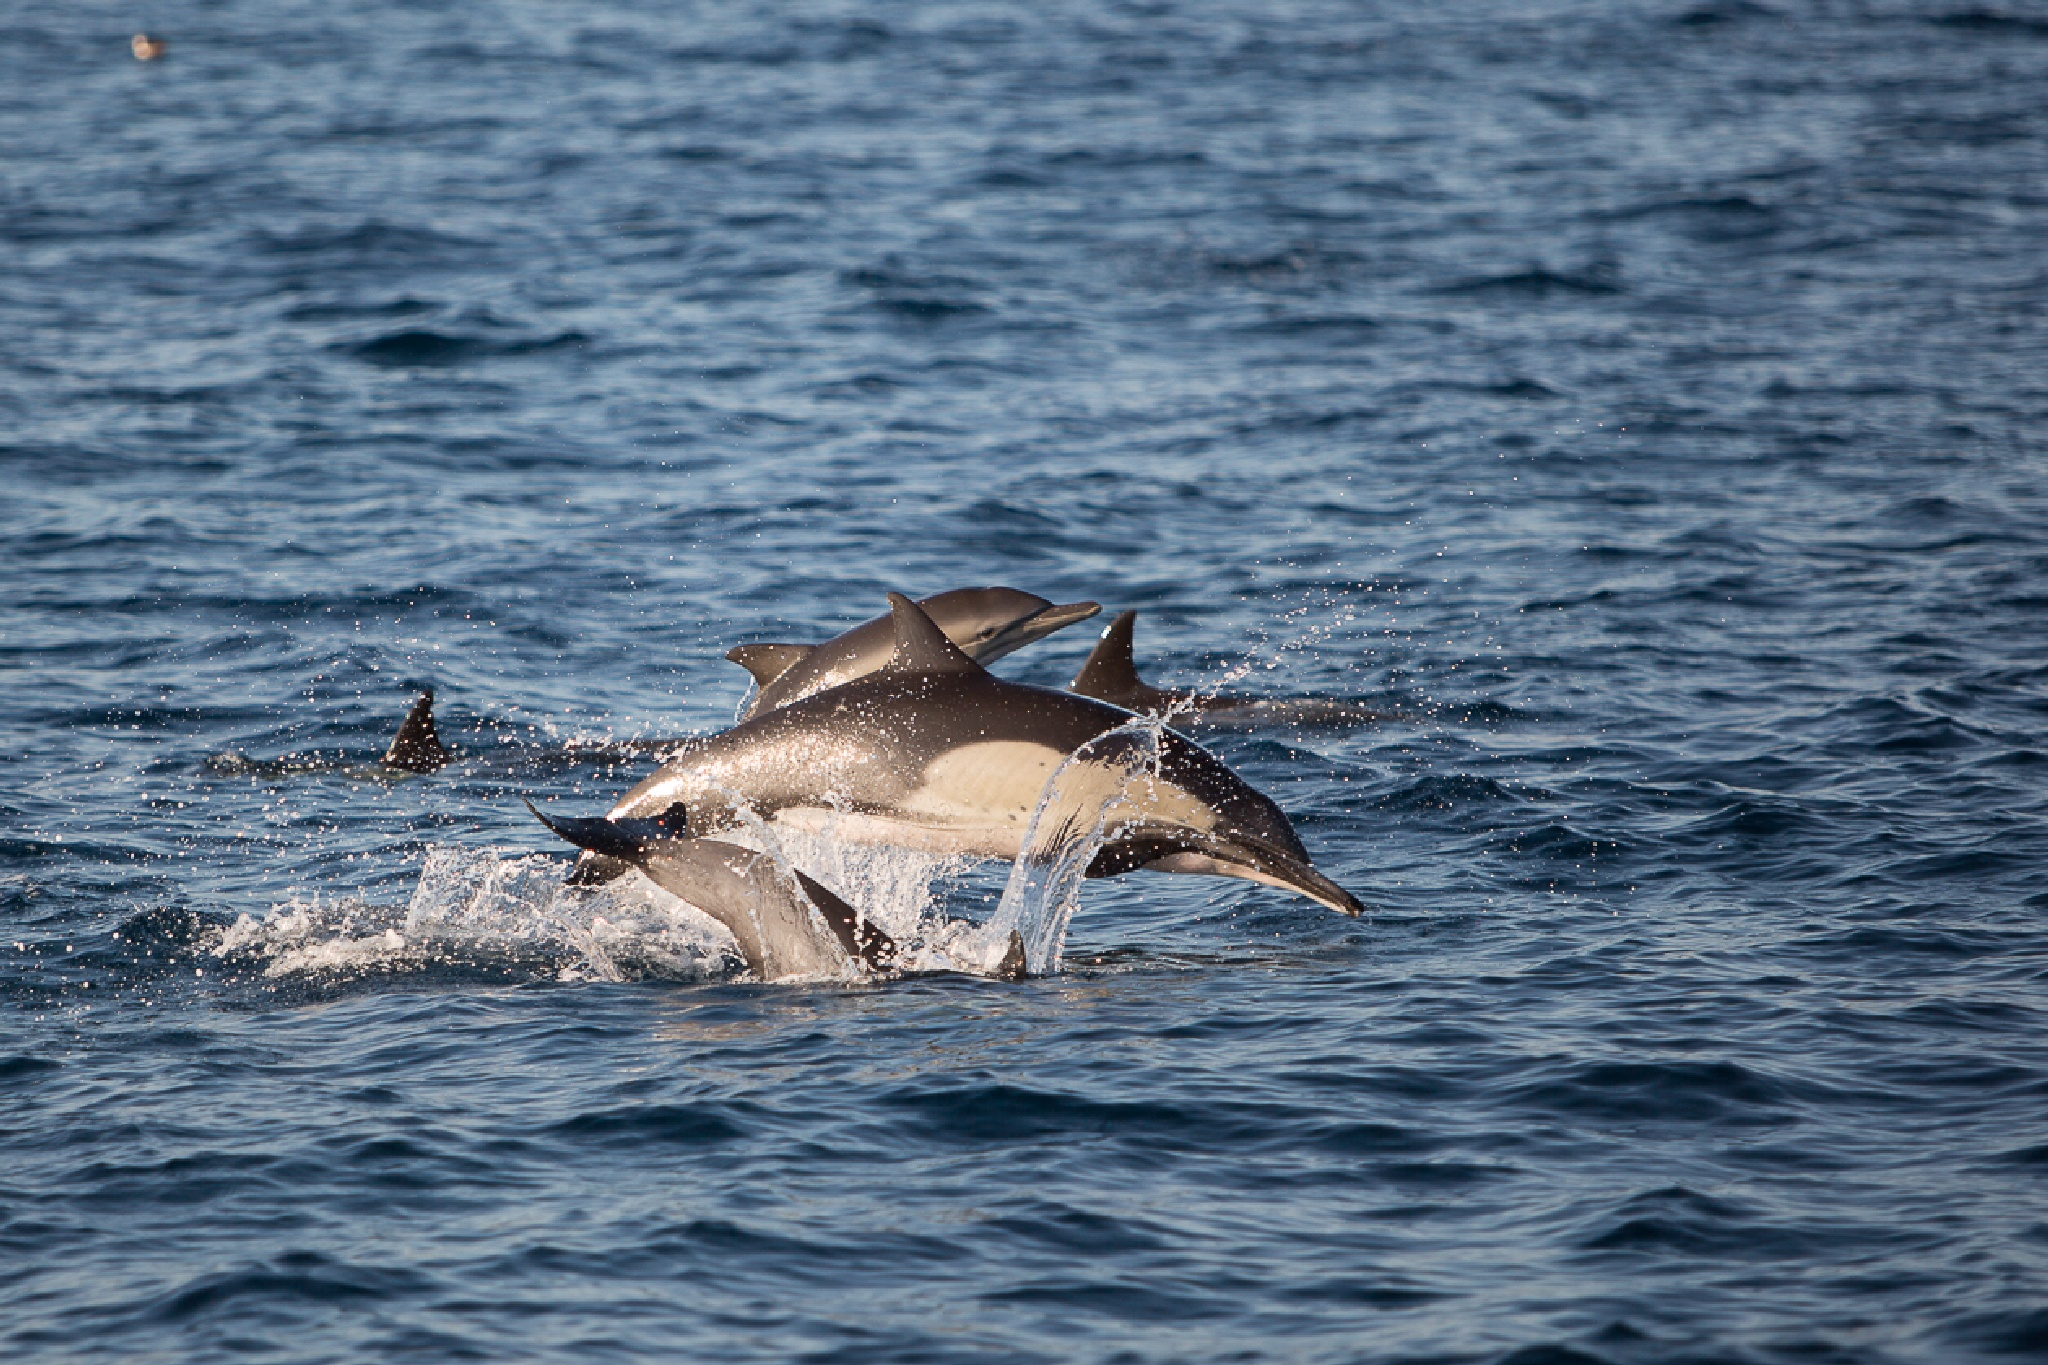 Happy Dolphins by MatthewJDavis